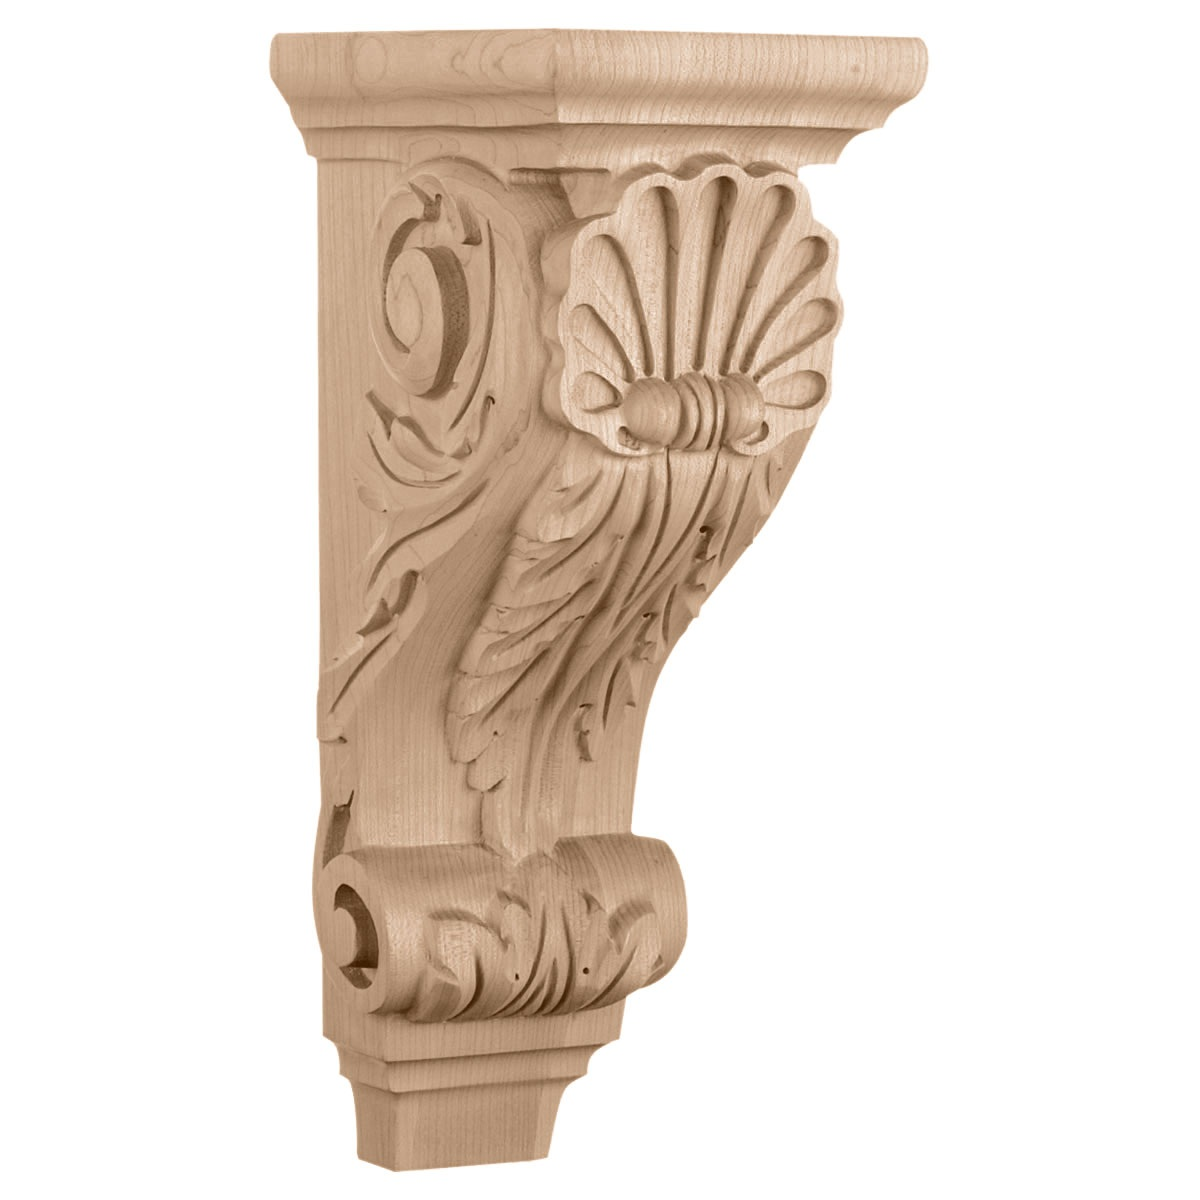 CORSH2 Medium Shell Corbel